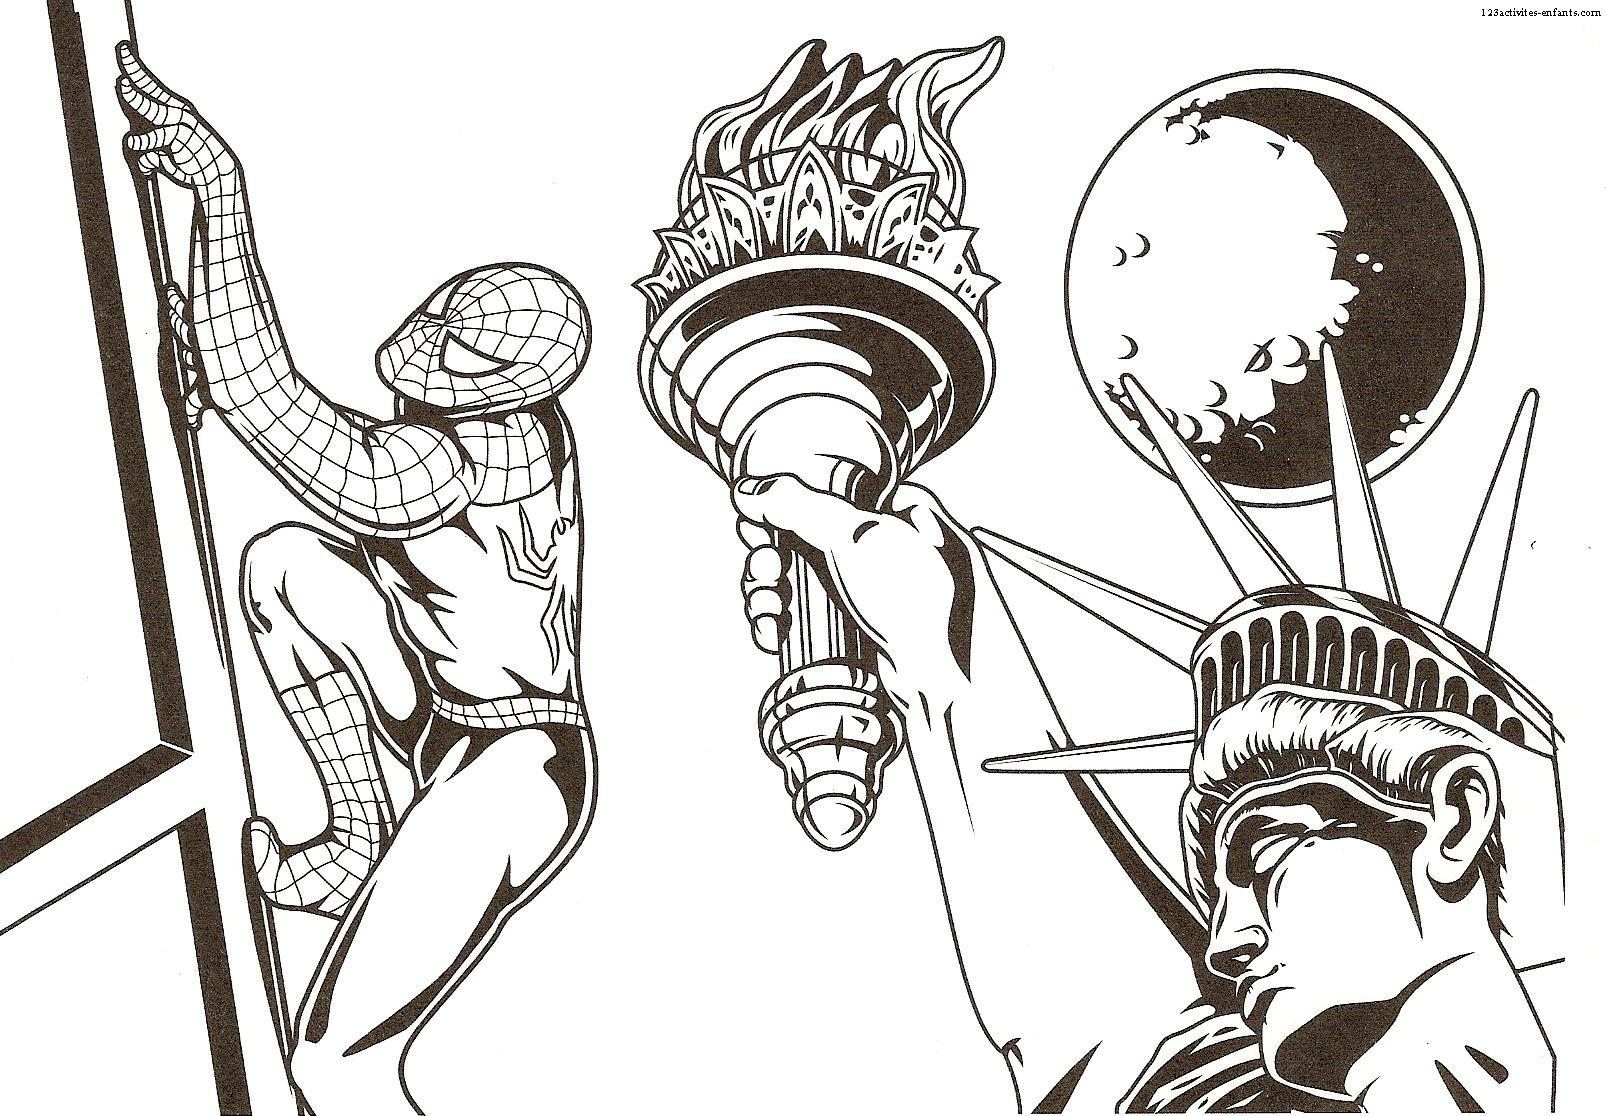 Spiderman 1 - Coloriage Spiderman - Coloriages pour enfants